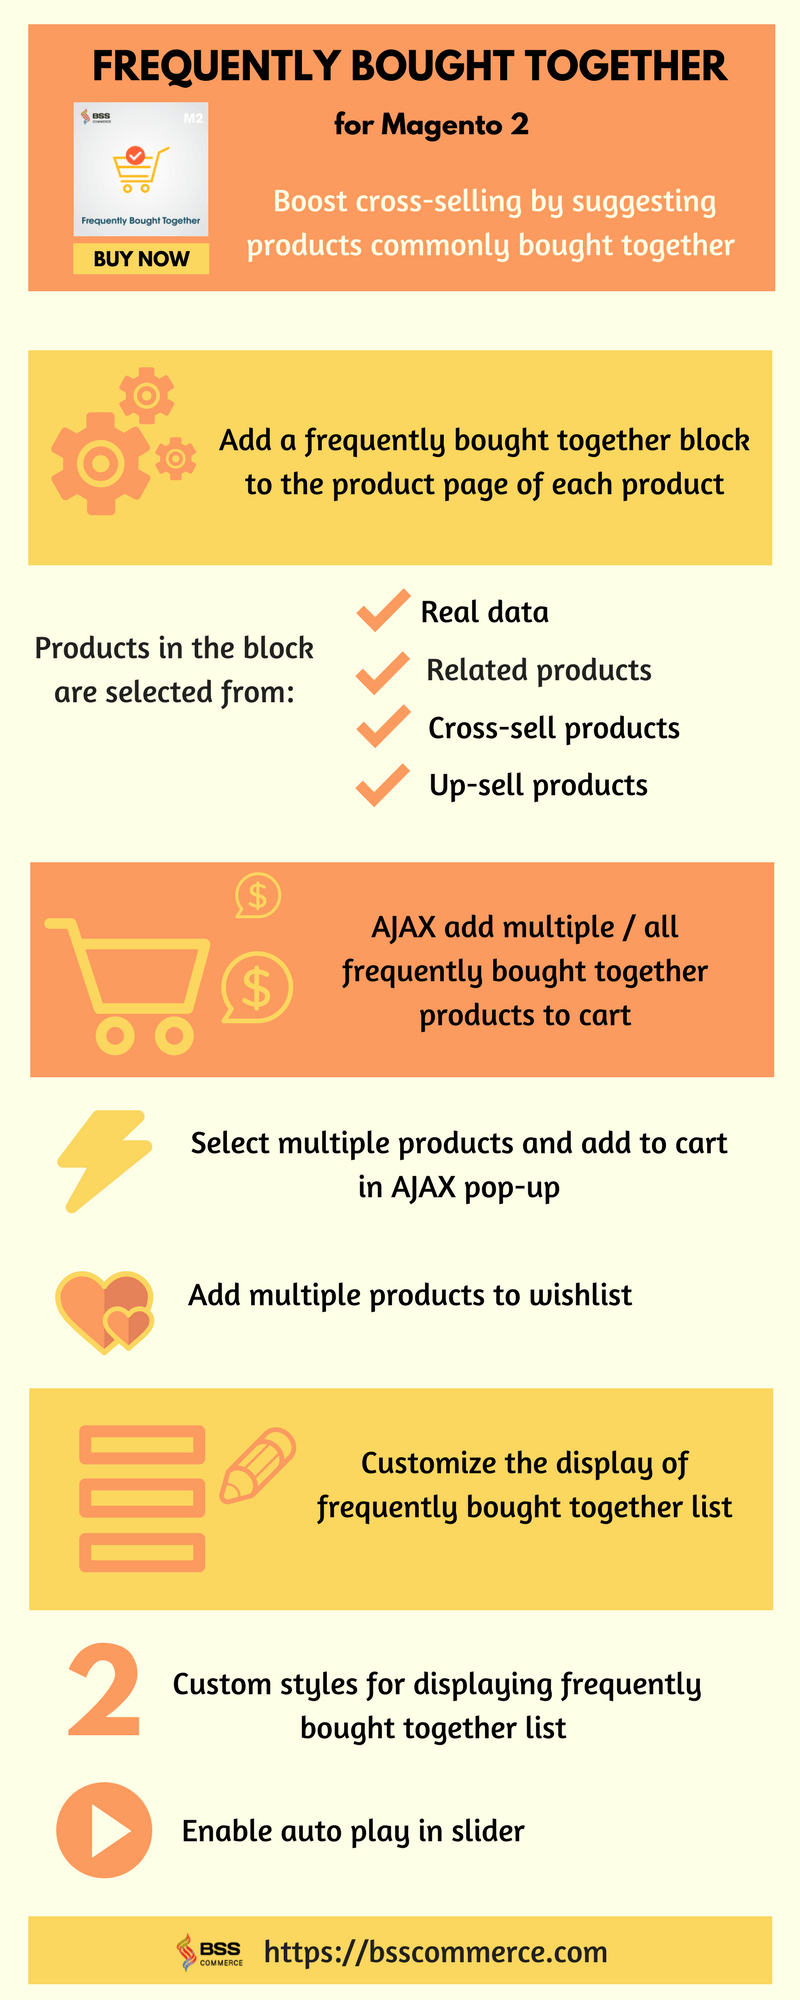 Overview of Frequently Bought Together for Magento 2 Extension